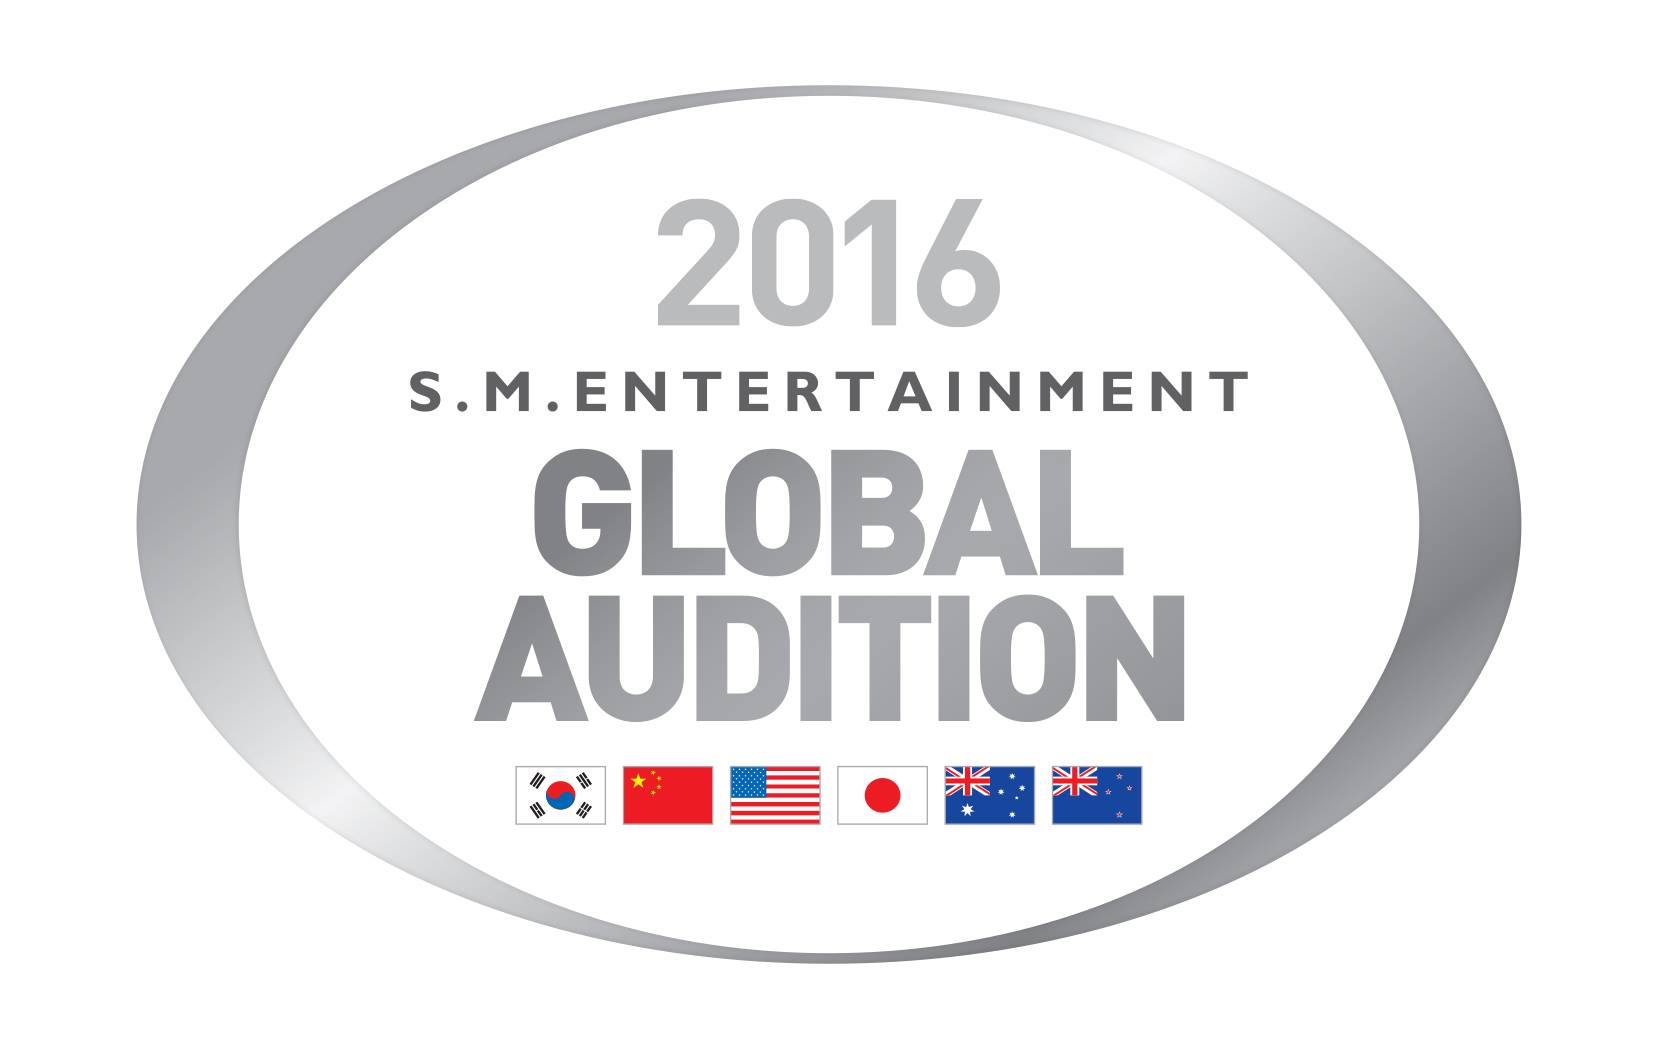 SM Entertainment Global Audition 2016 coming to Australia and New Zealand